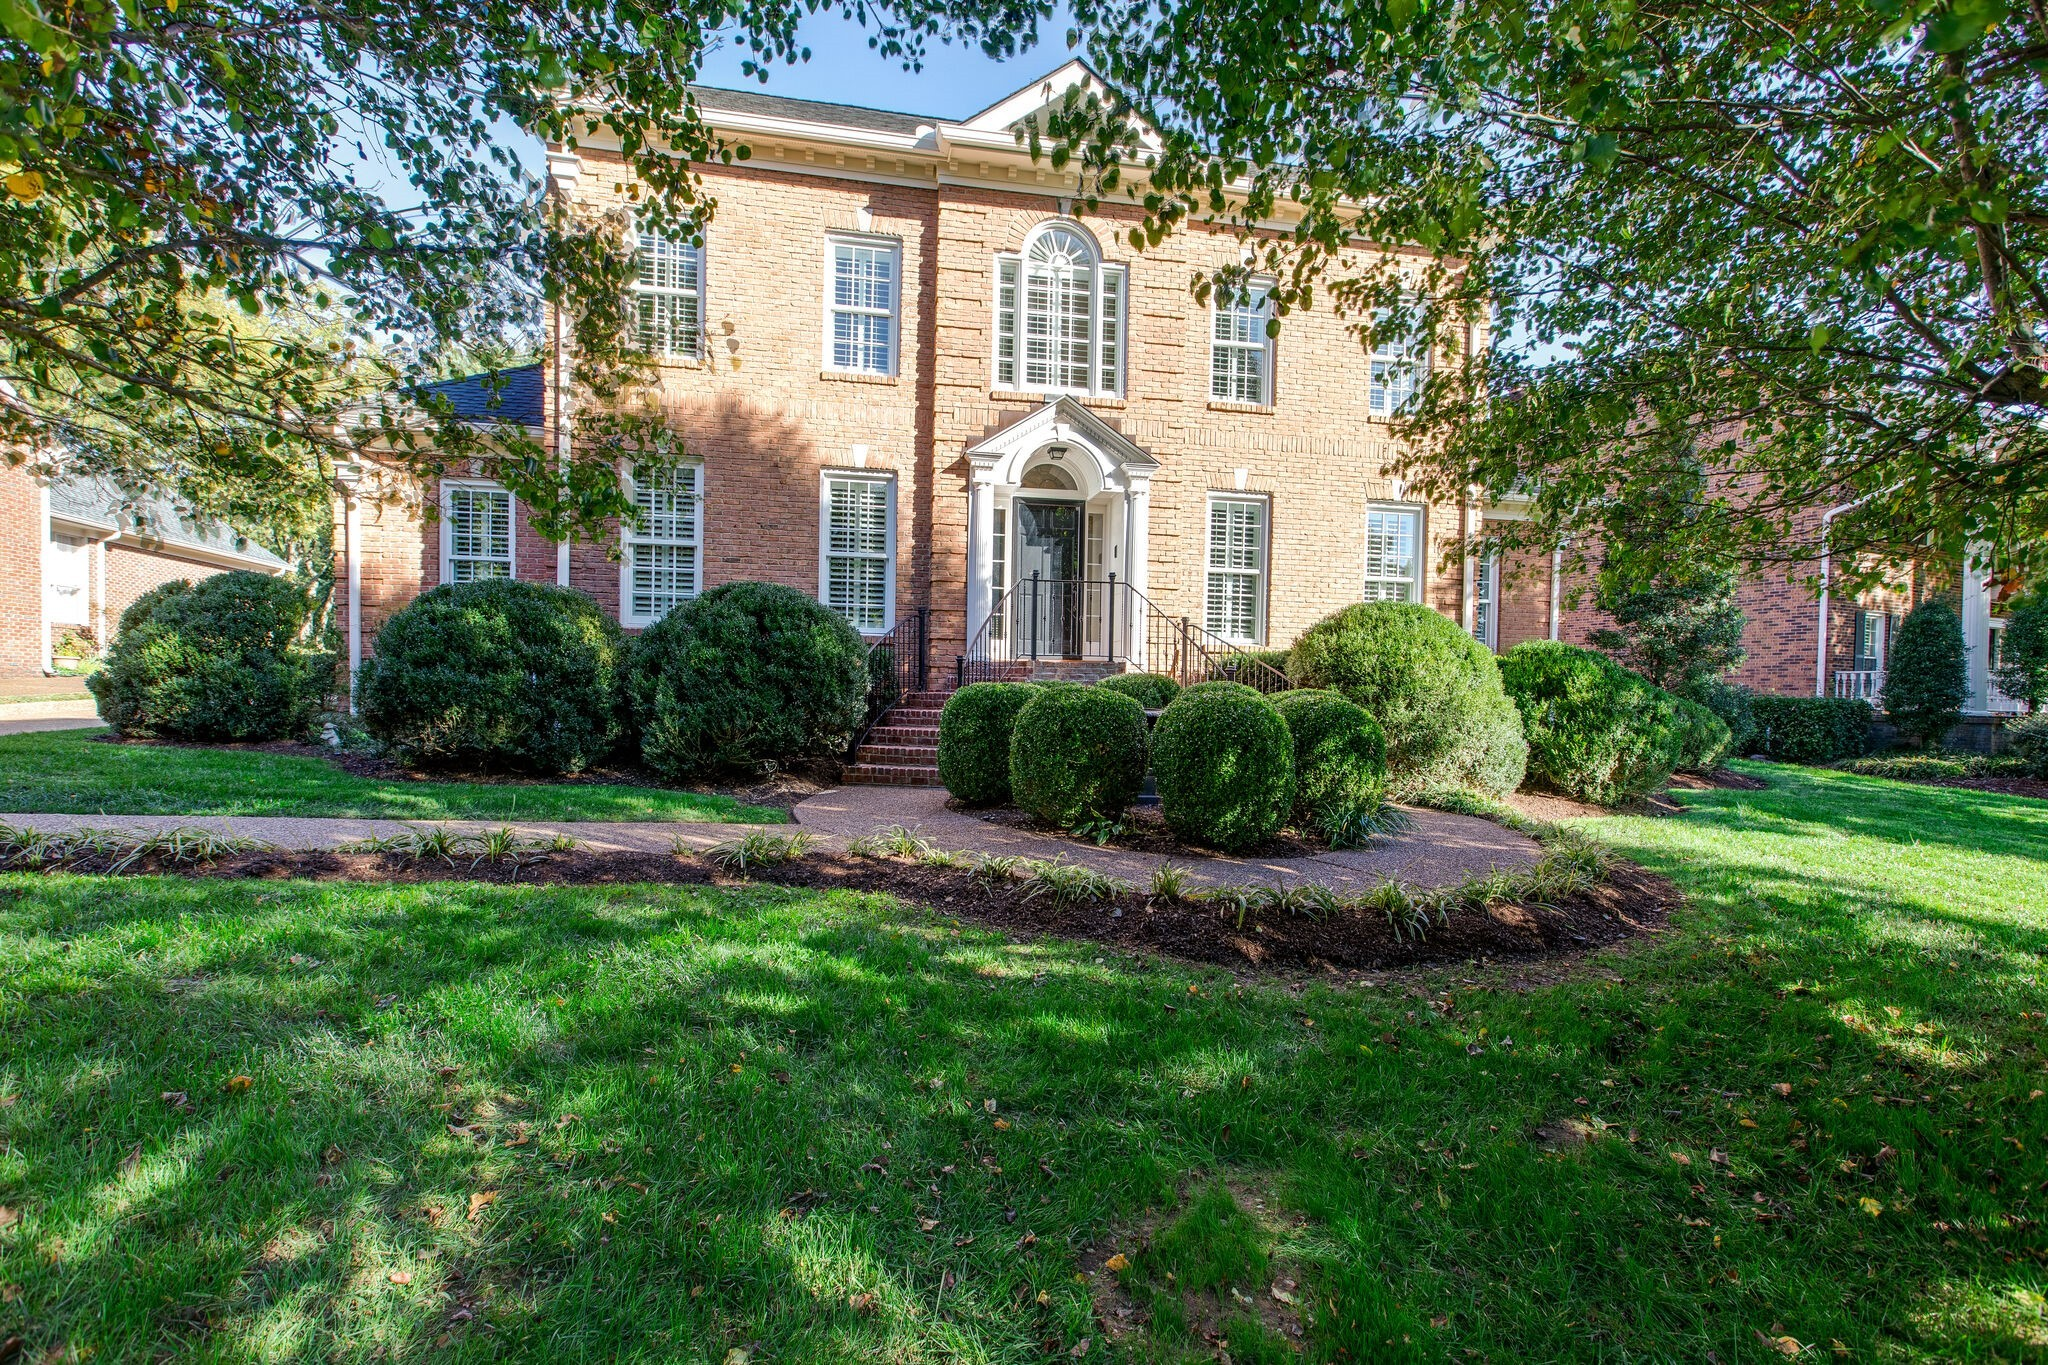 RENOVATED&CUSTOM BUILT BRICK HOME ON .49 ACRE in DOWNTOWN FRANKLIN!  Front of home was built in 1986 & renovated in 2020&new ADDITION added in 2008.  2 KITCHENS & 2 EN SUITES.  See attached list of amenities and/or additions.  Waterscape with 2 waterfalls and koi pond, landscaping, GOURMET kitchen w/long island, butler's pantry, open entertaining areas, custom office with built-n-bookcase, wrapping room, and location, location and location.